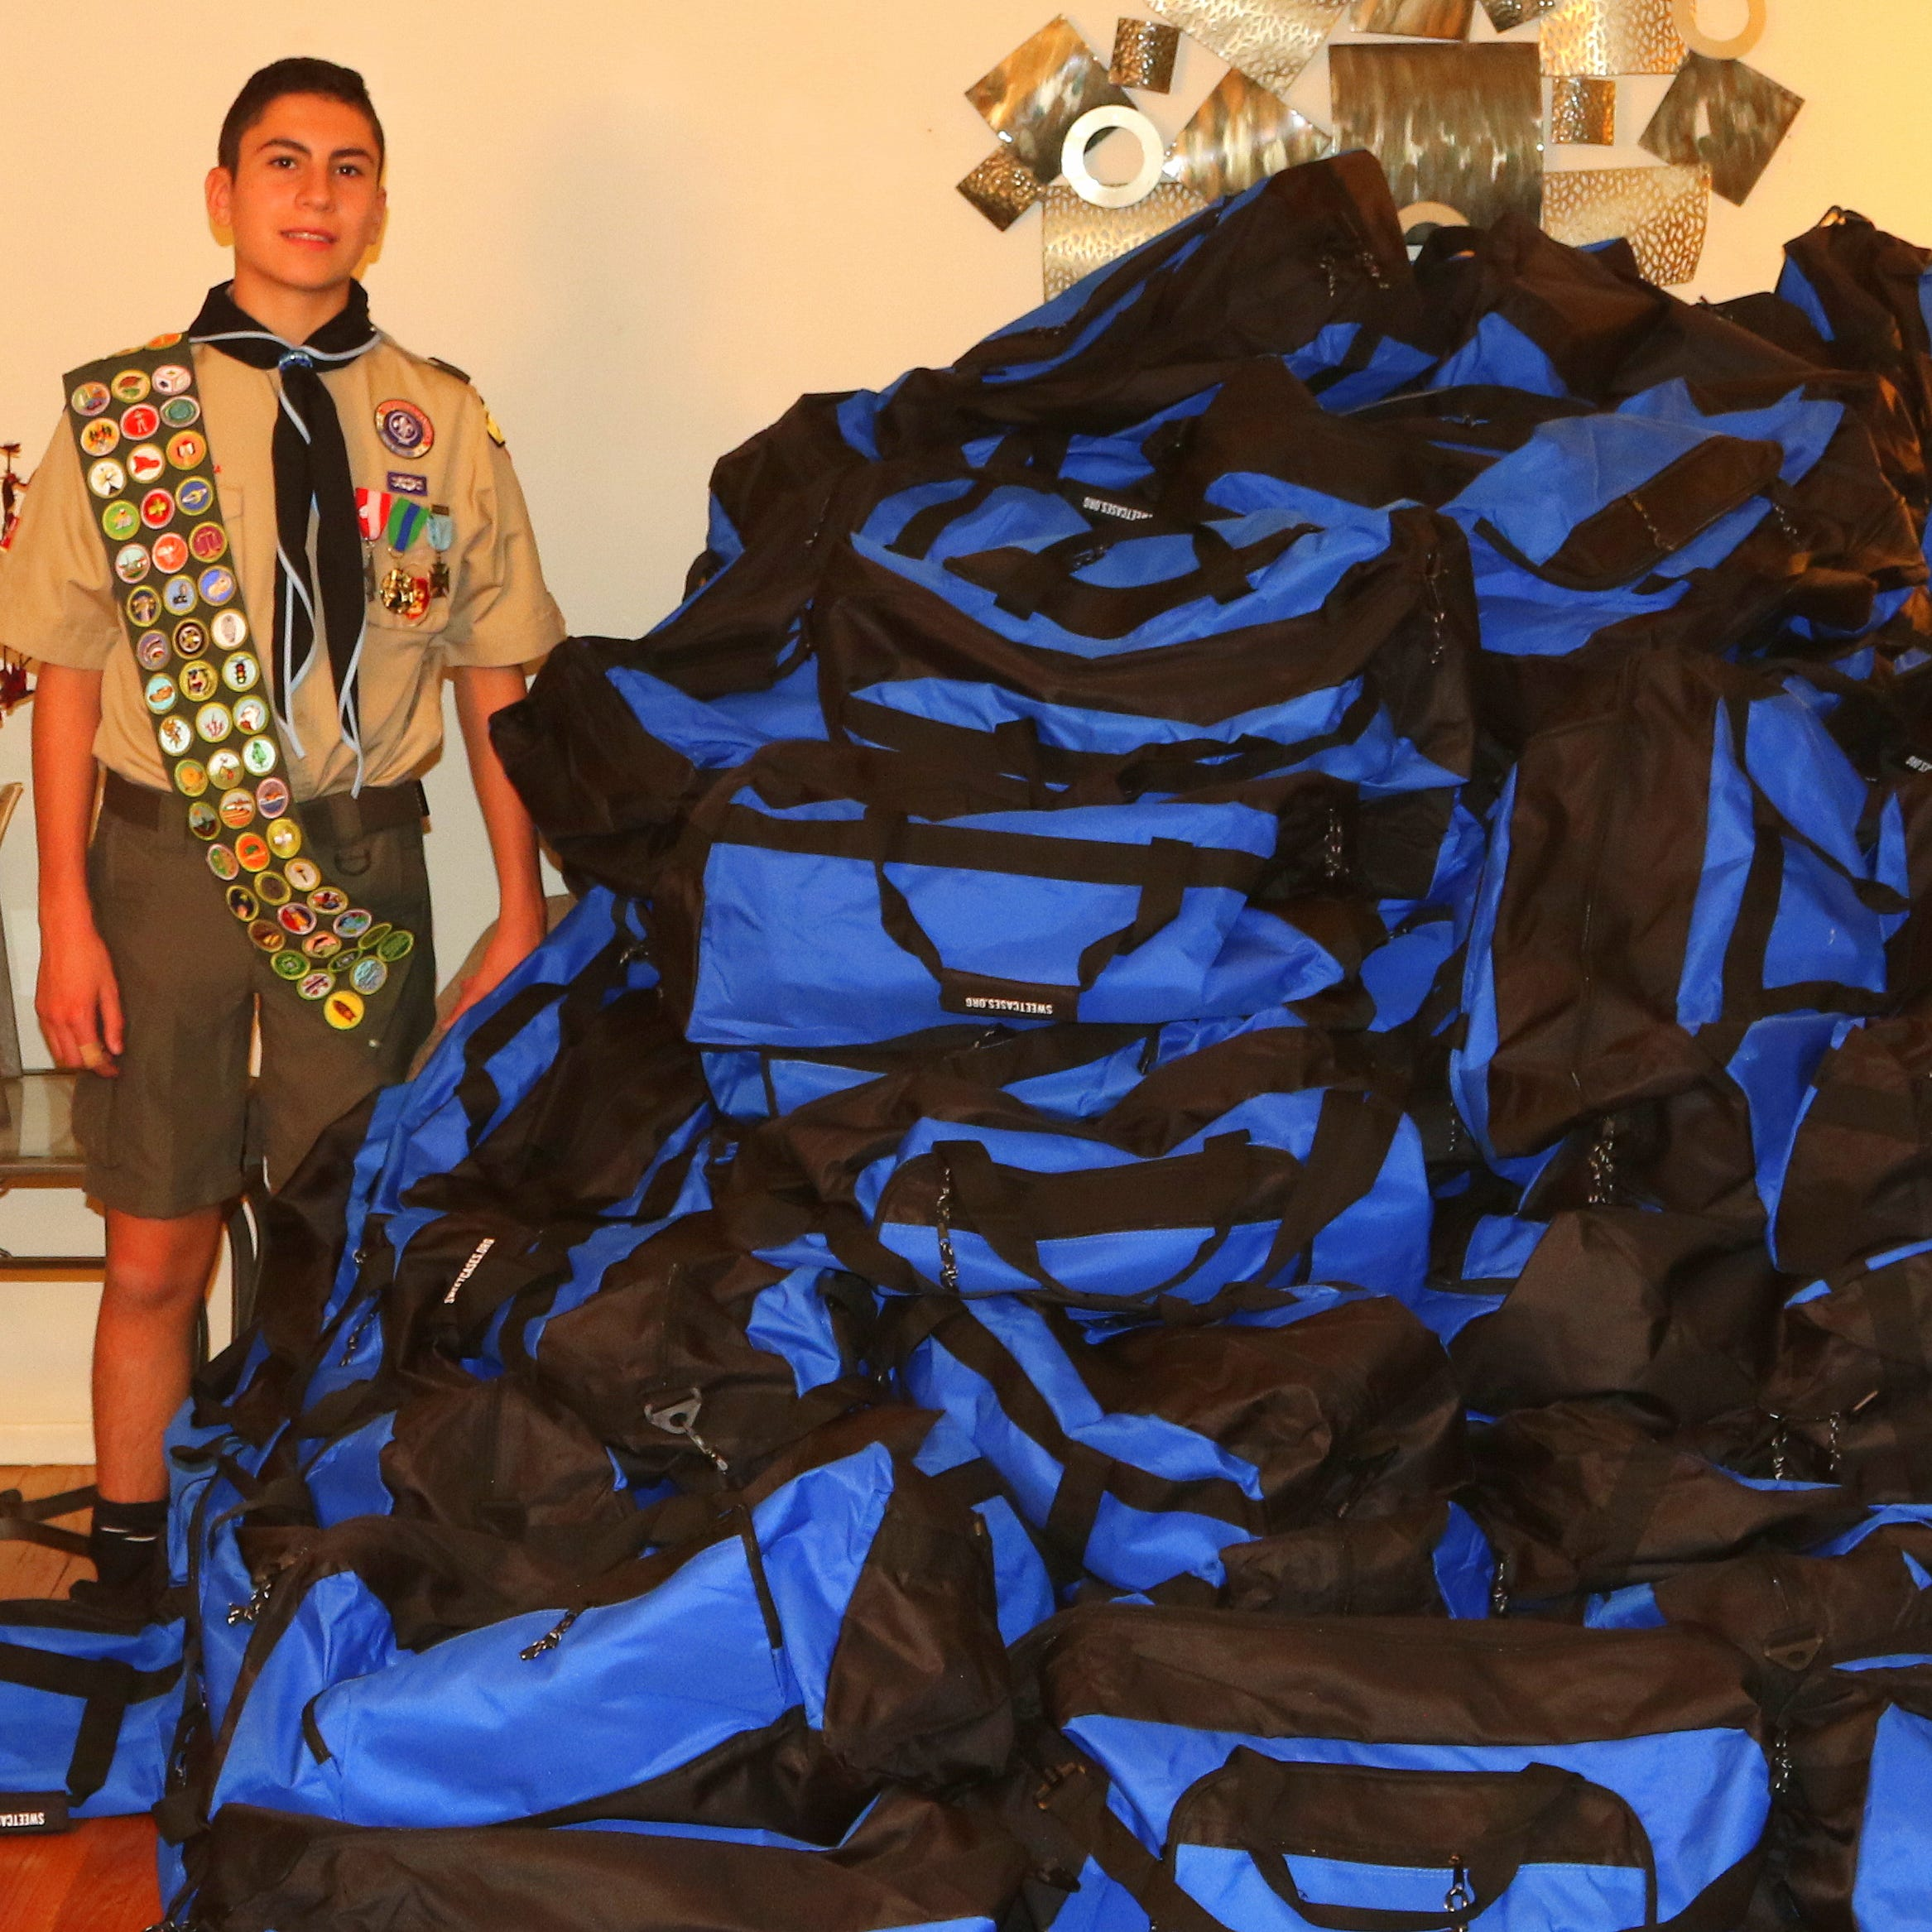 Livonia Boy Scout donates duffel bags to foster children